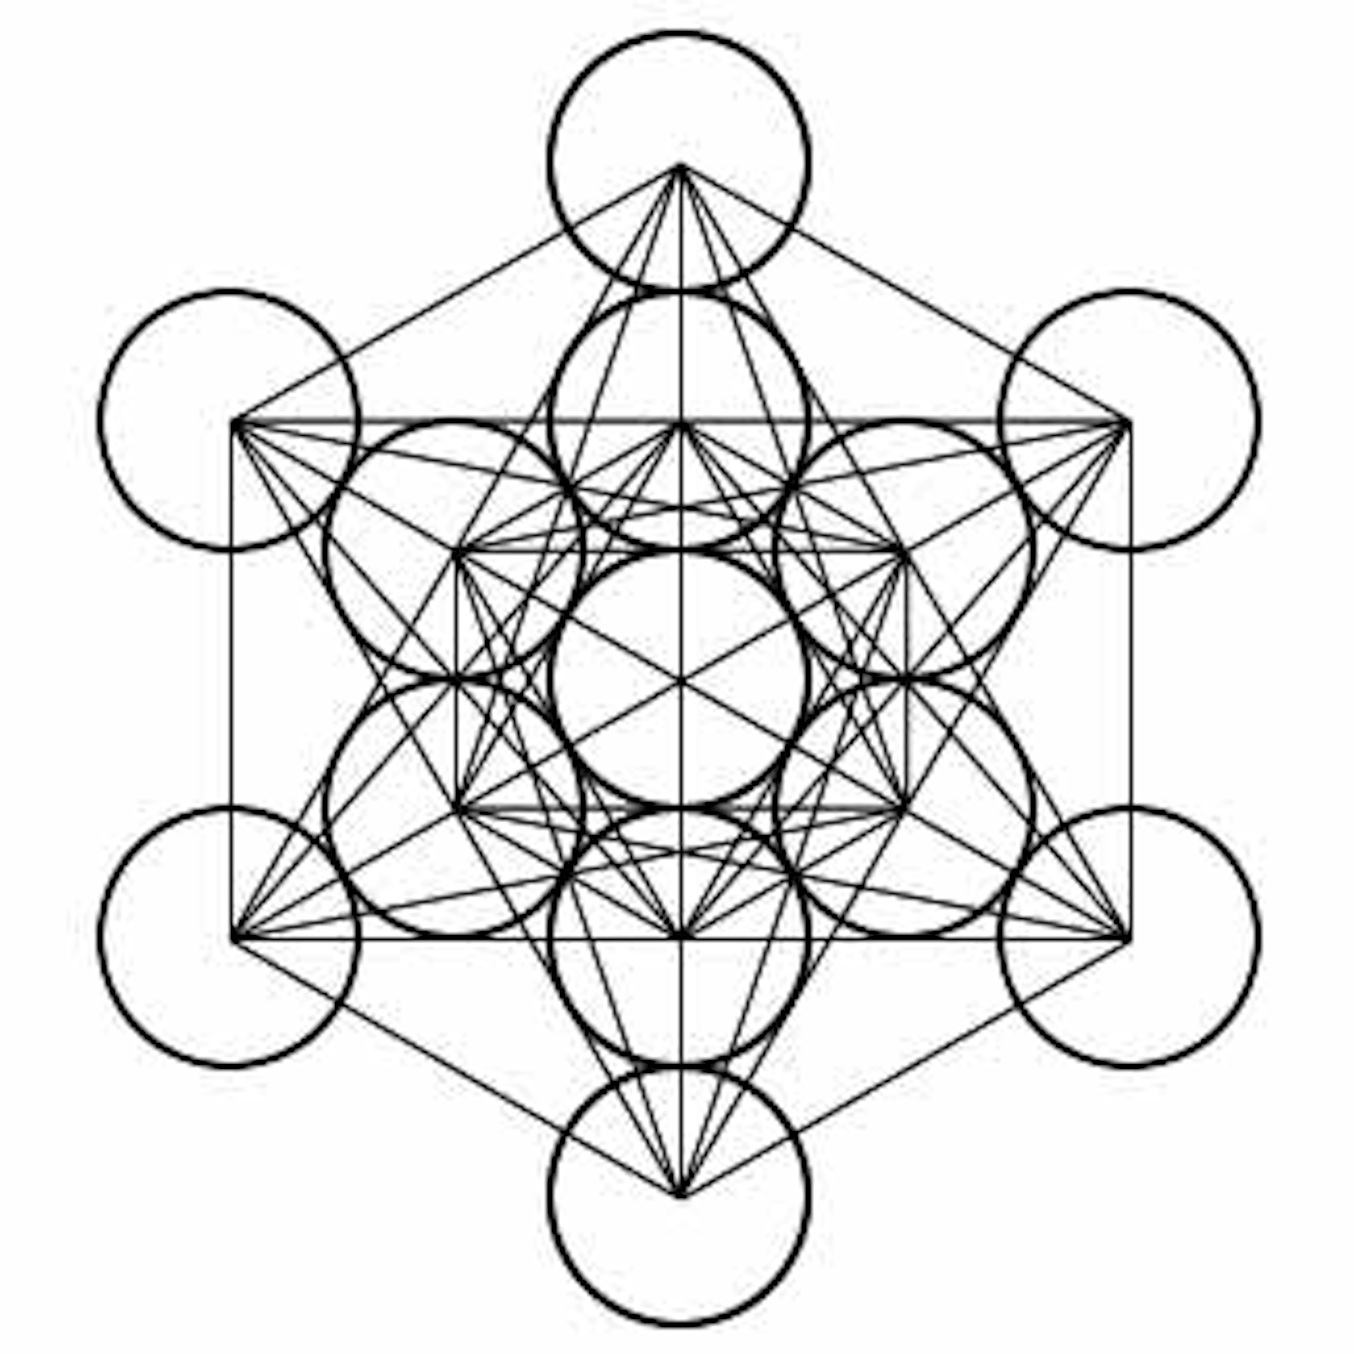 Metatron s Cube Hidden Meaning and Value in Media